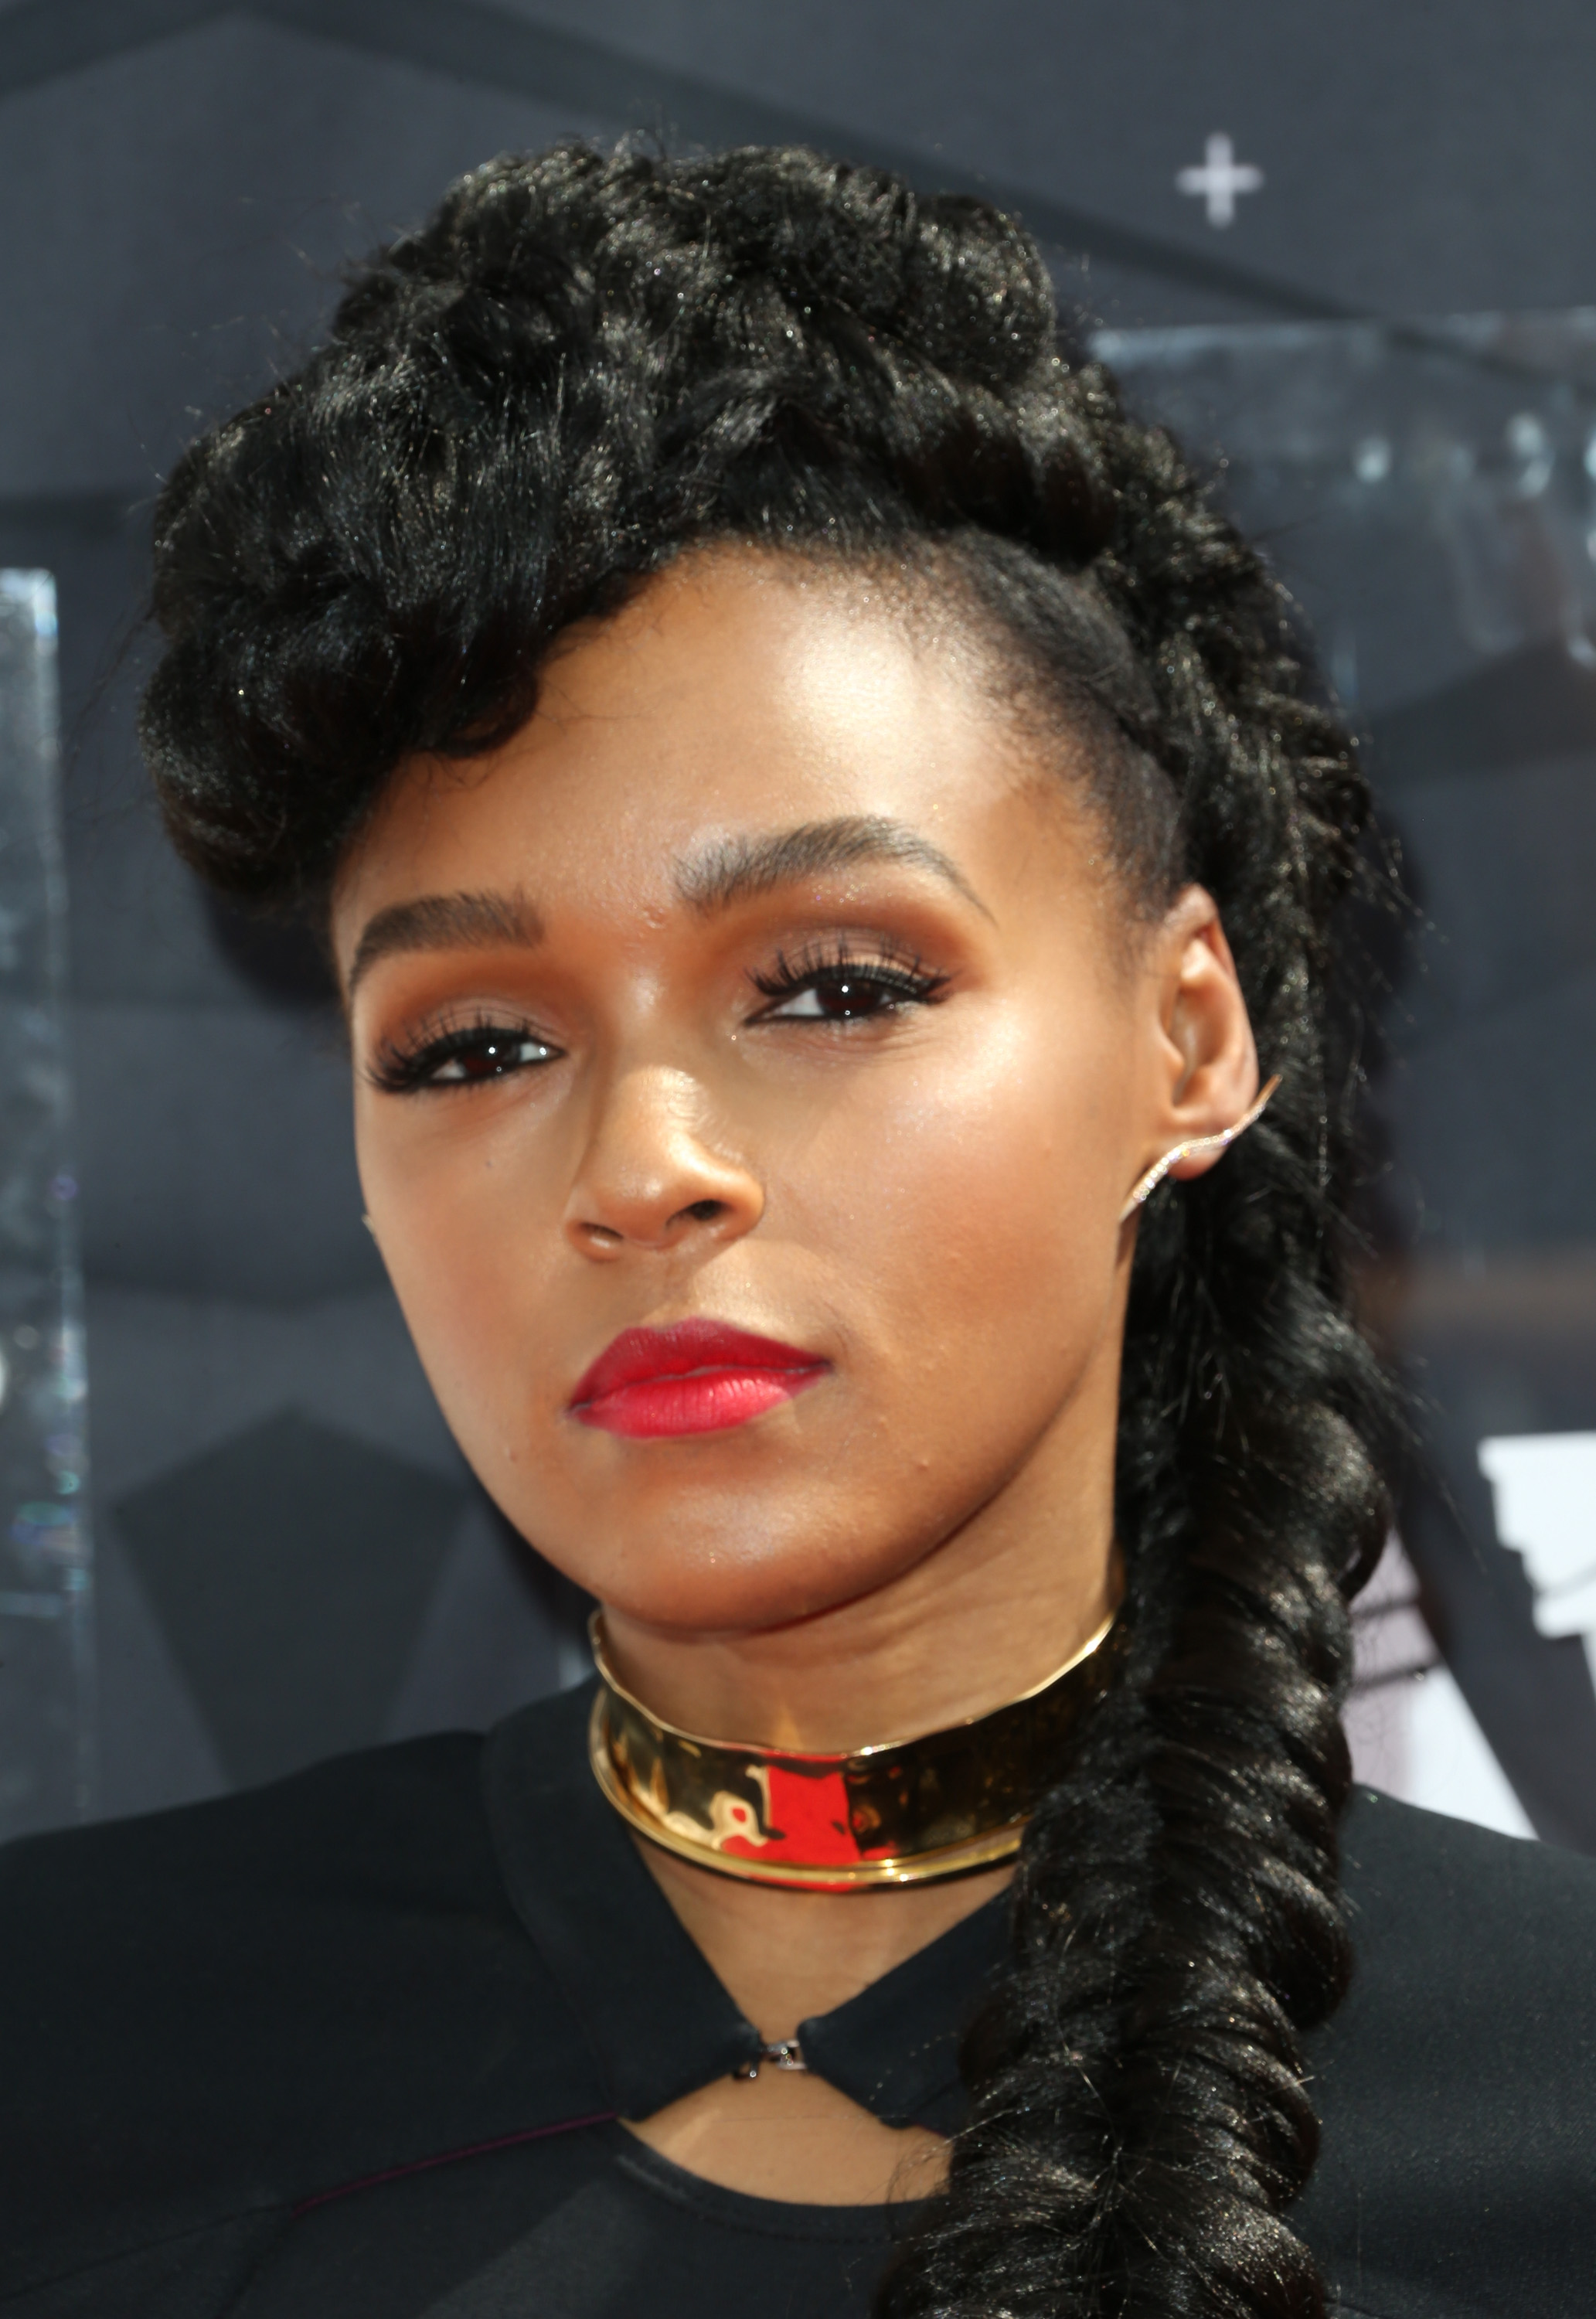 Janelle Monae Wore A Cape To The 2015 Bet Awards Looking